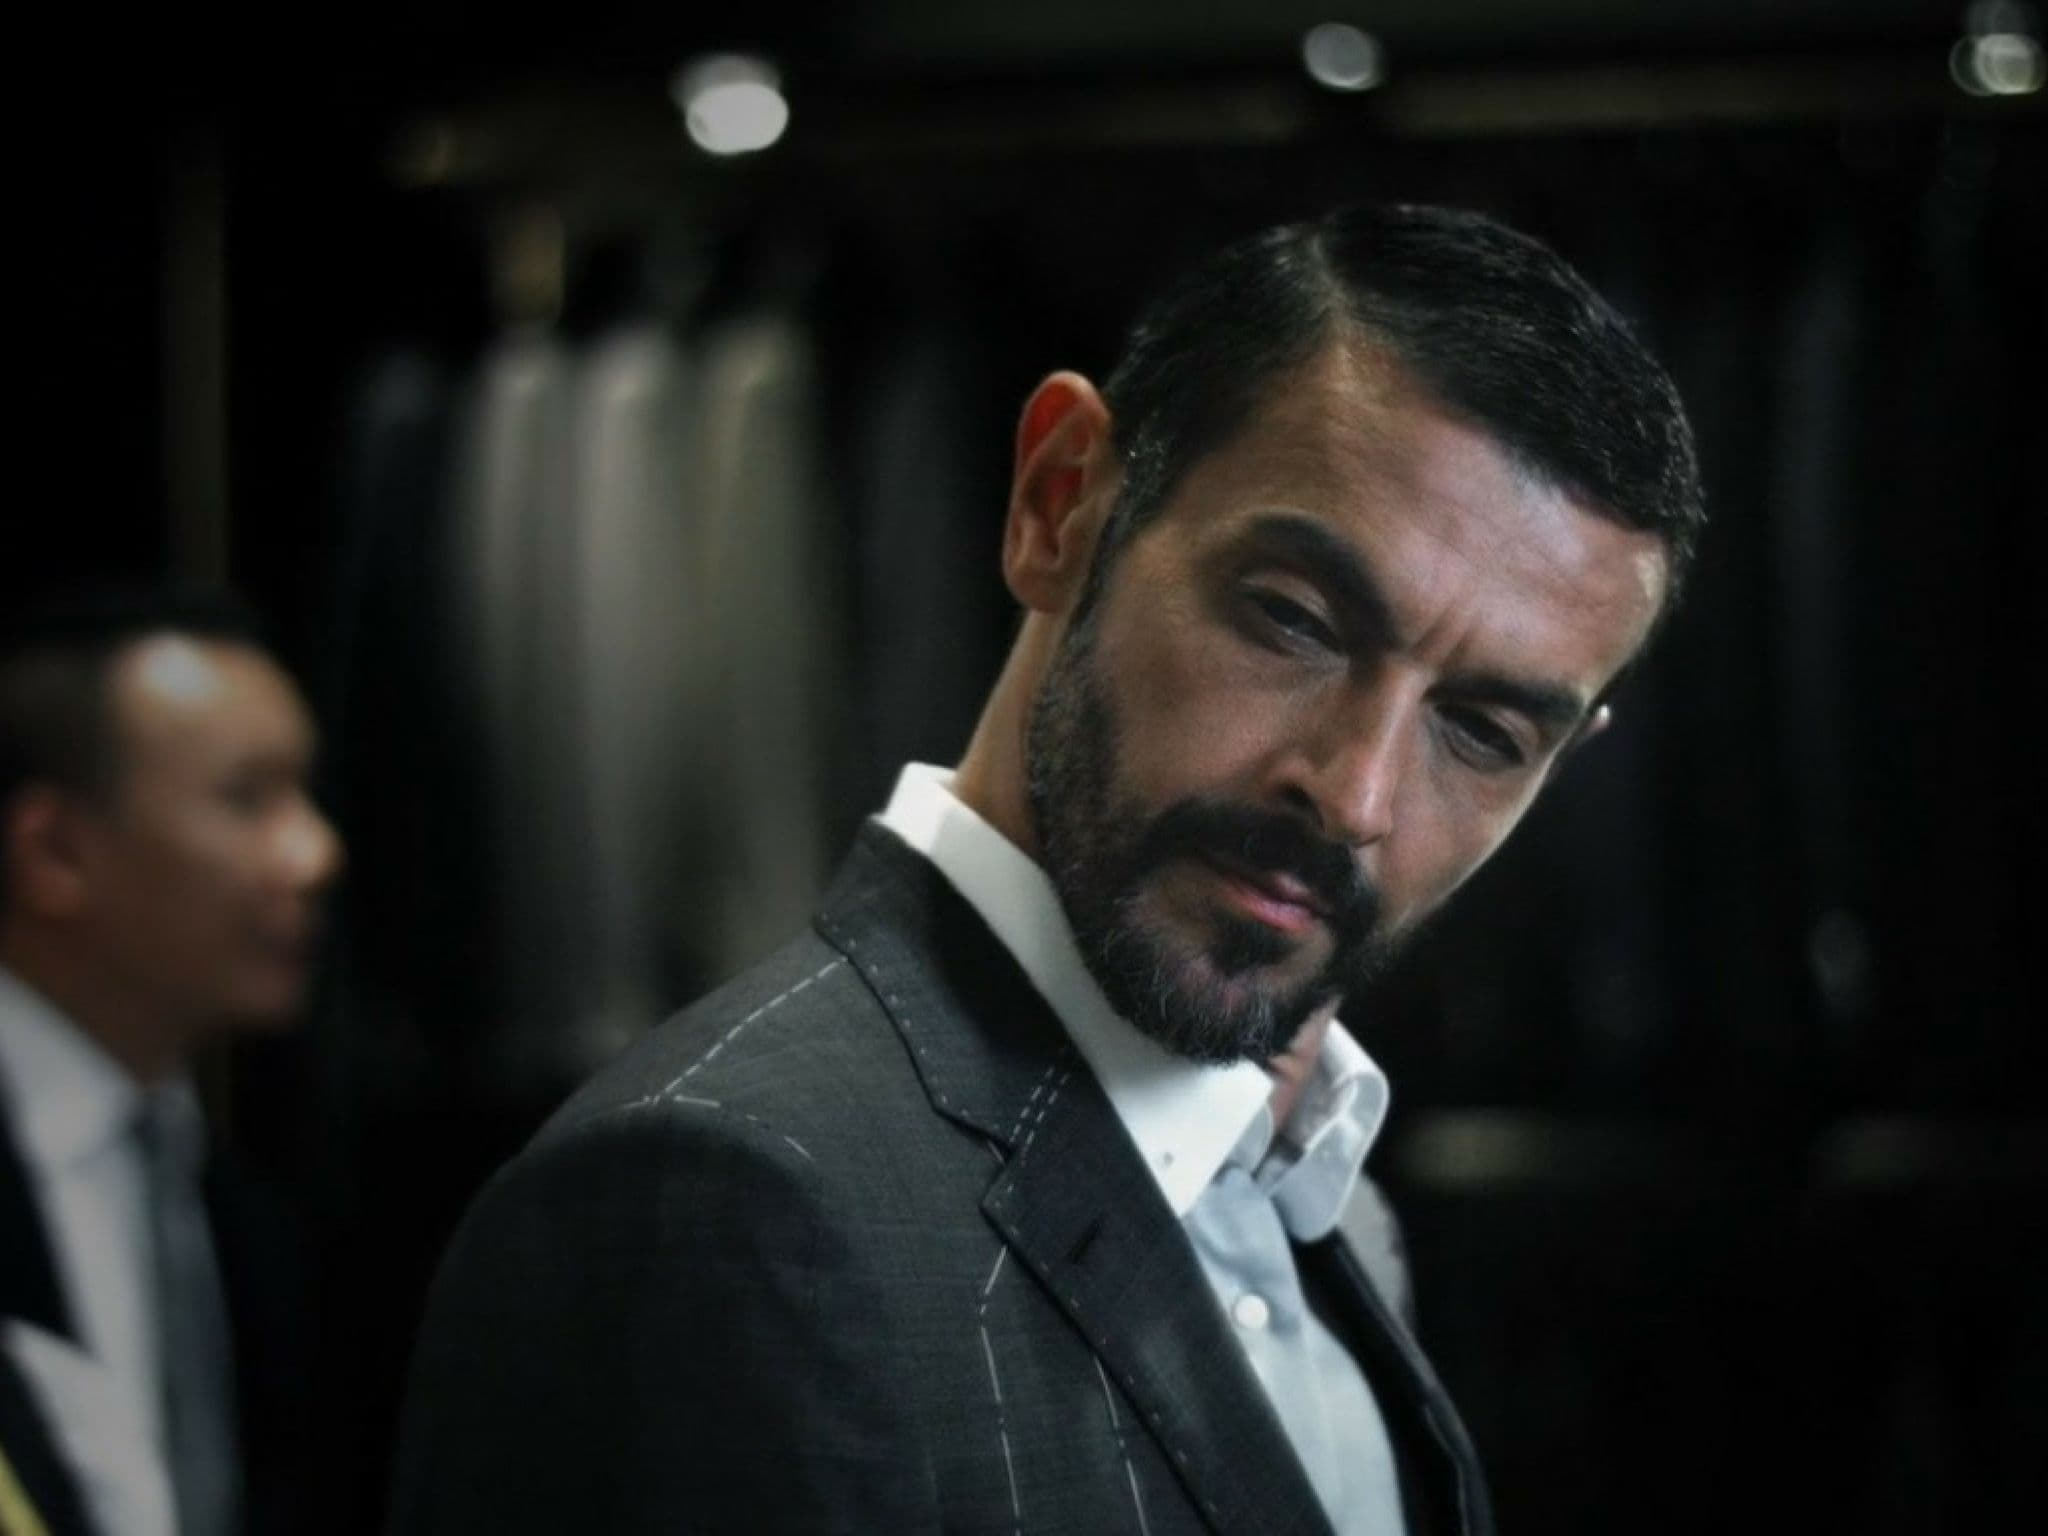 Philippe Joly - Promo video for luxury tailor Tai Pan Row (Hong Kong)